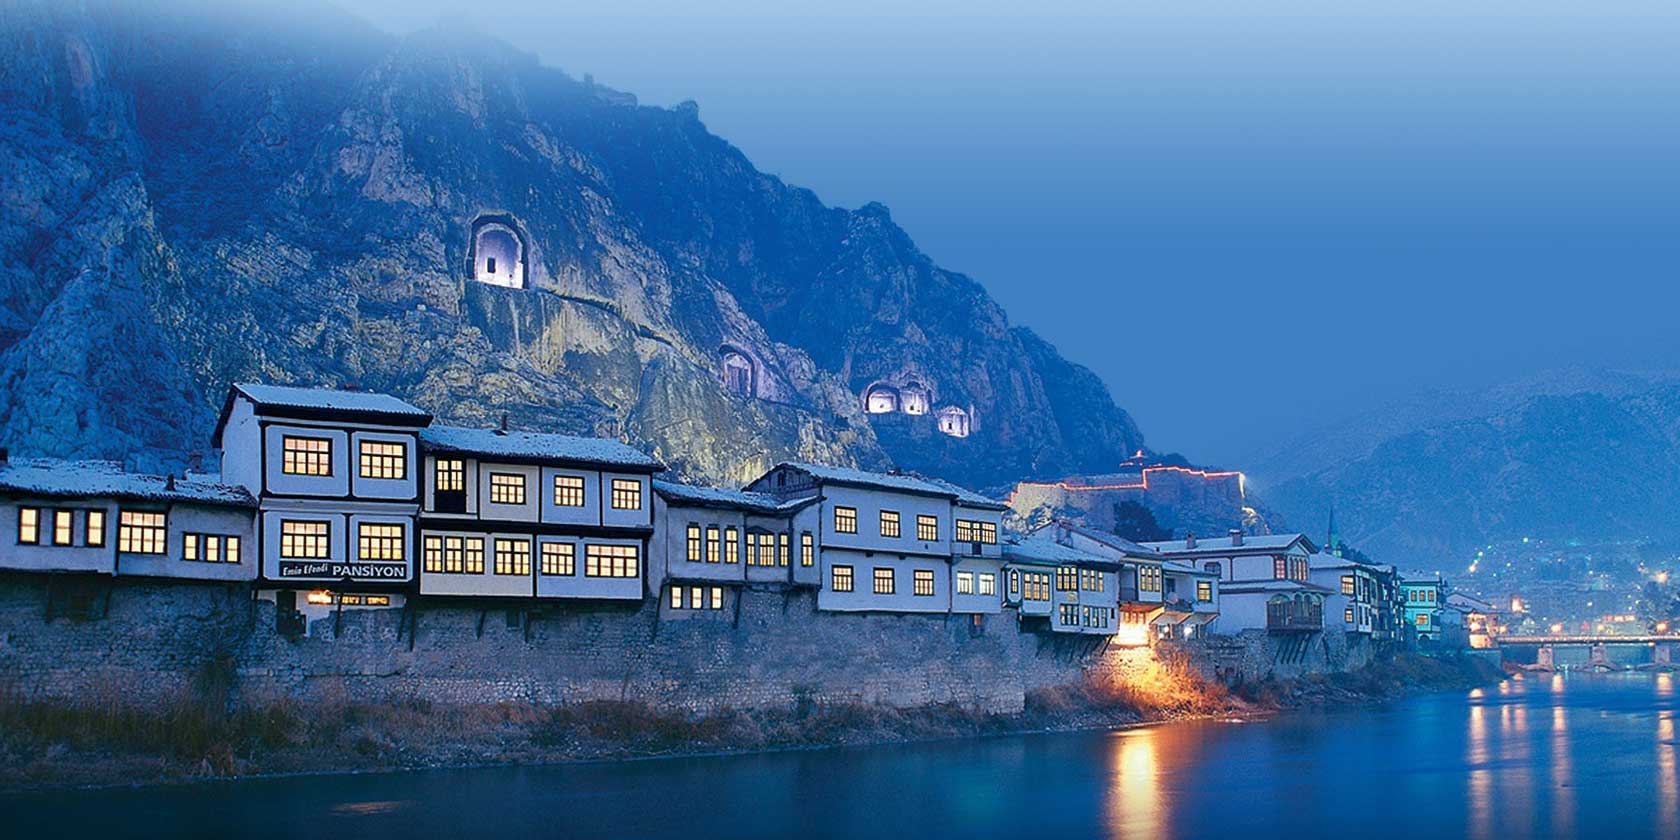 Amasya - birthplace of the Historian Strabon